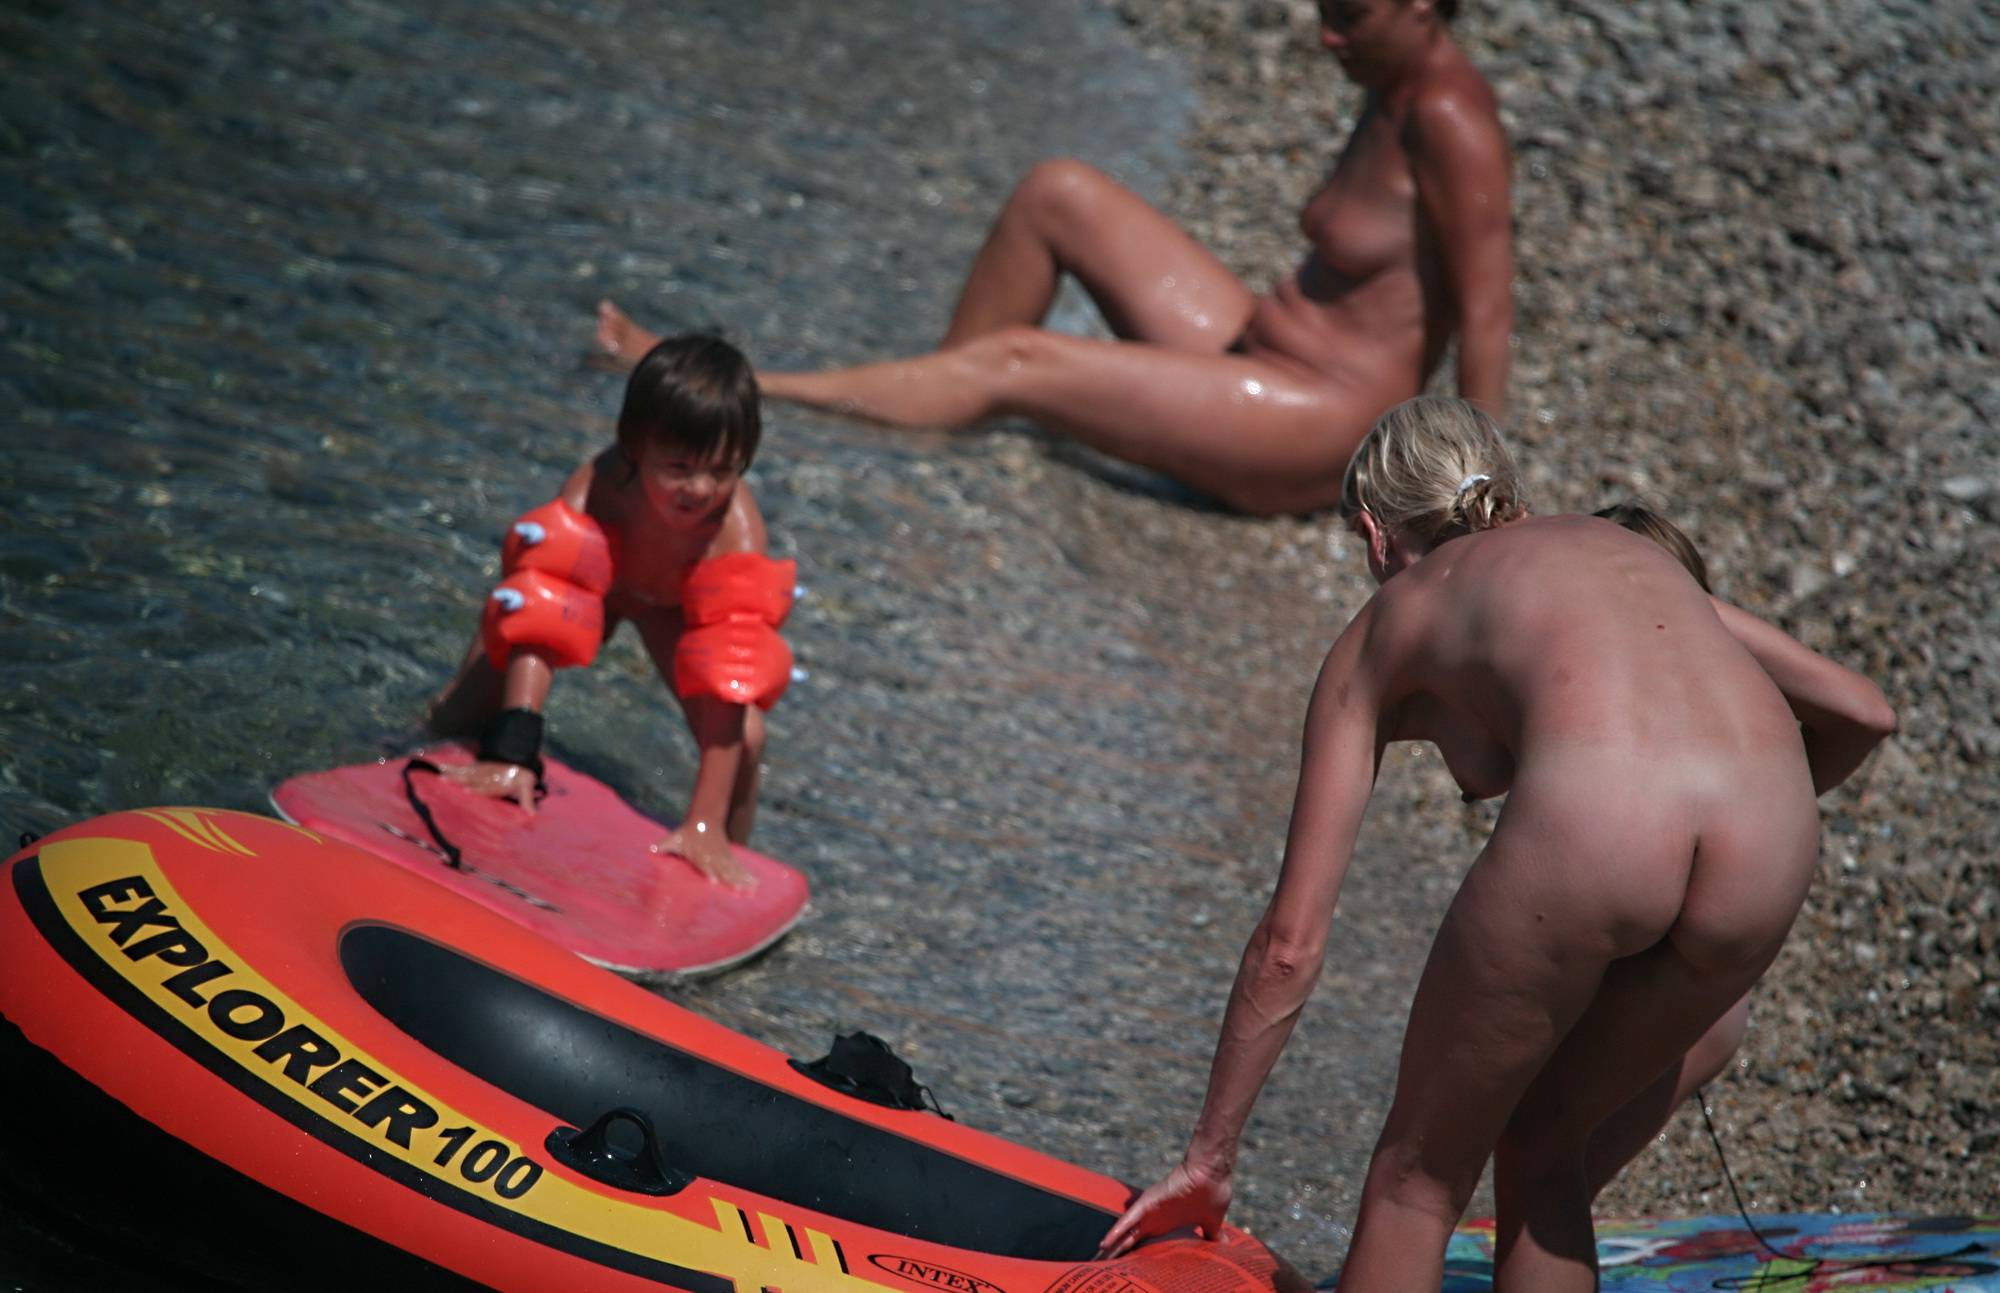 Nude Red Boating for Two - 1